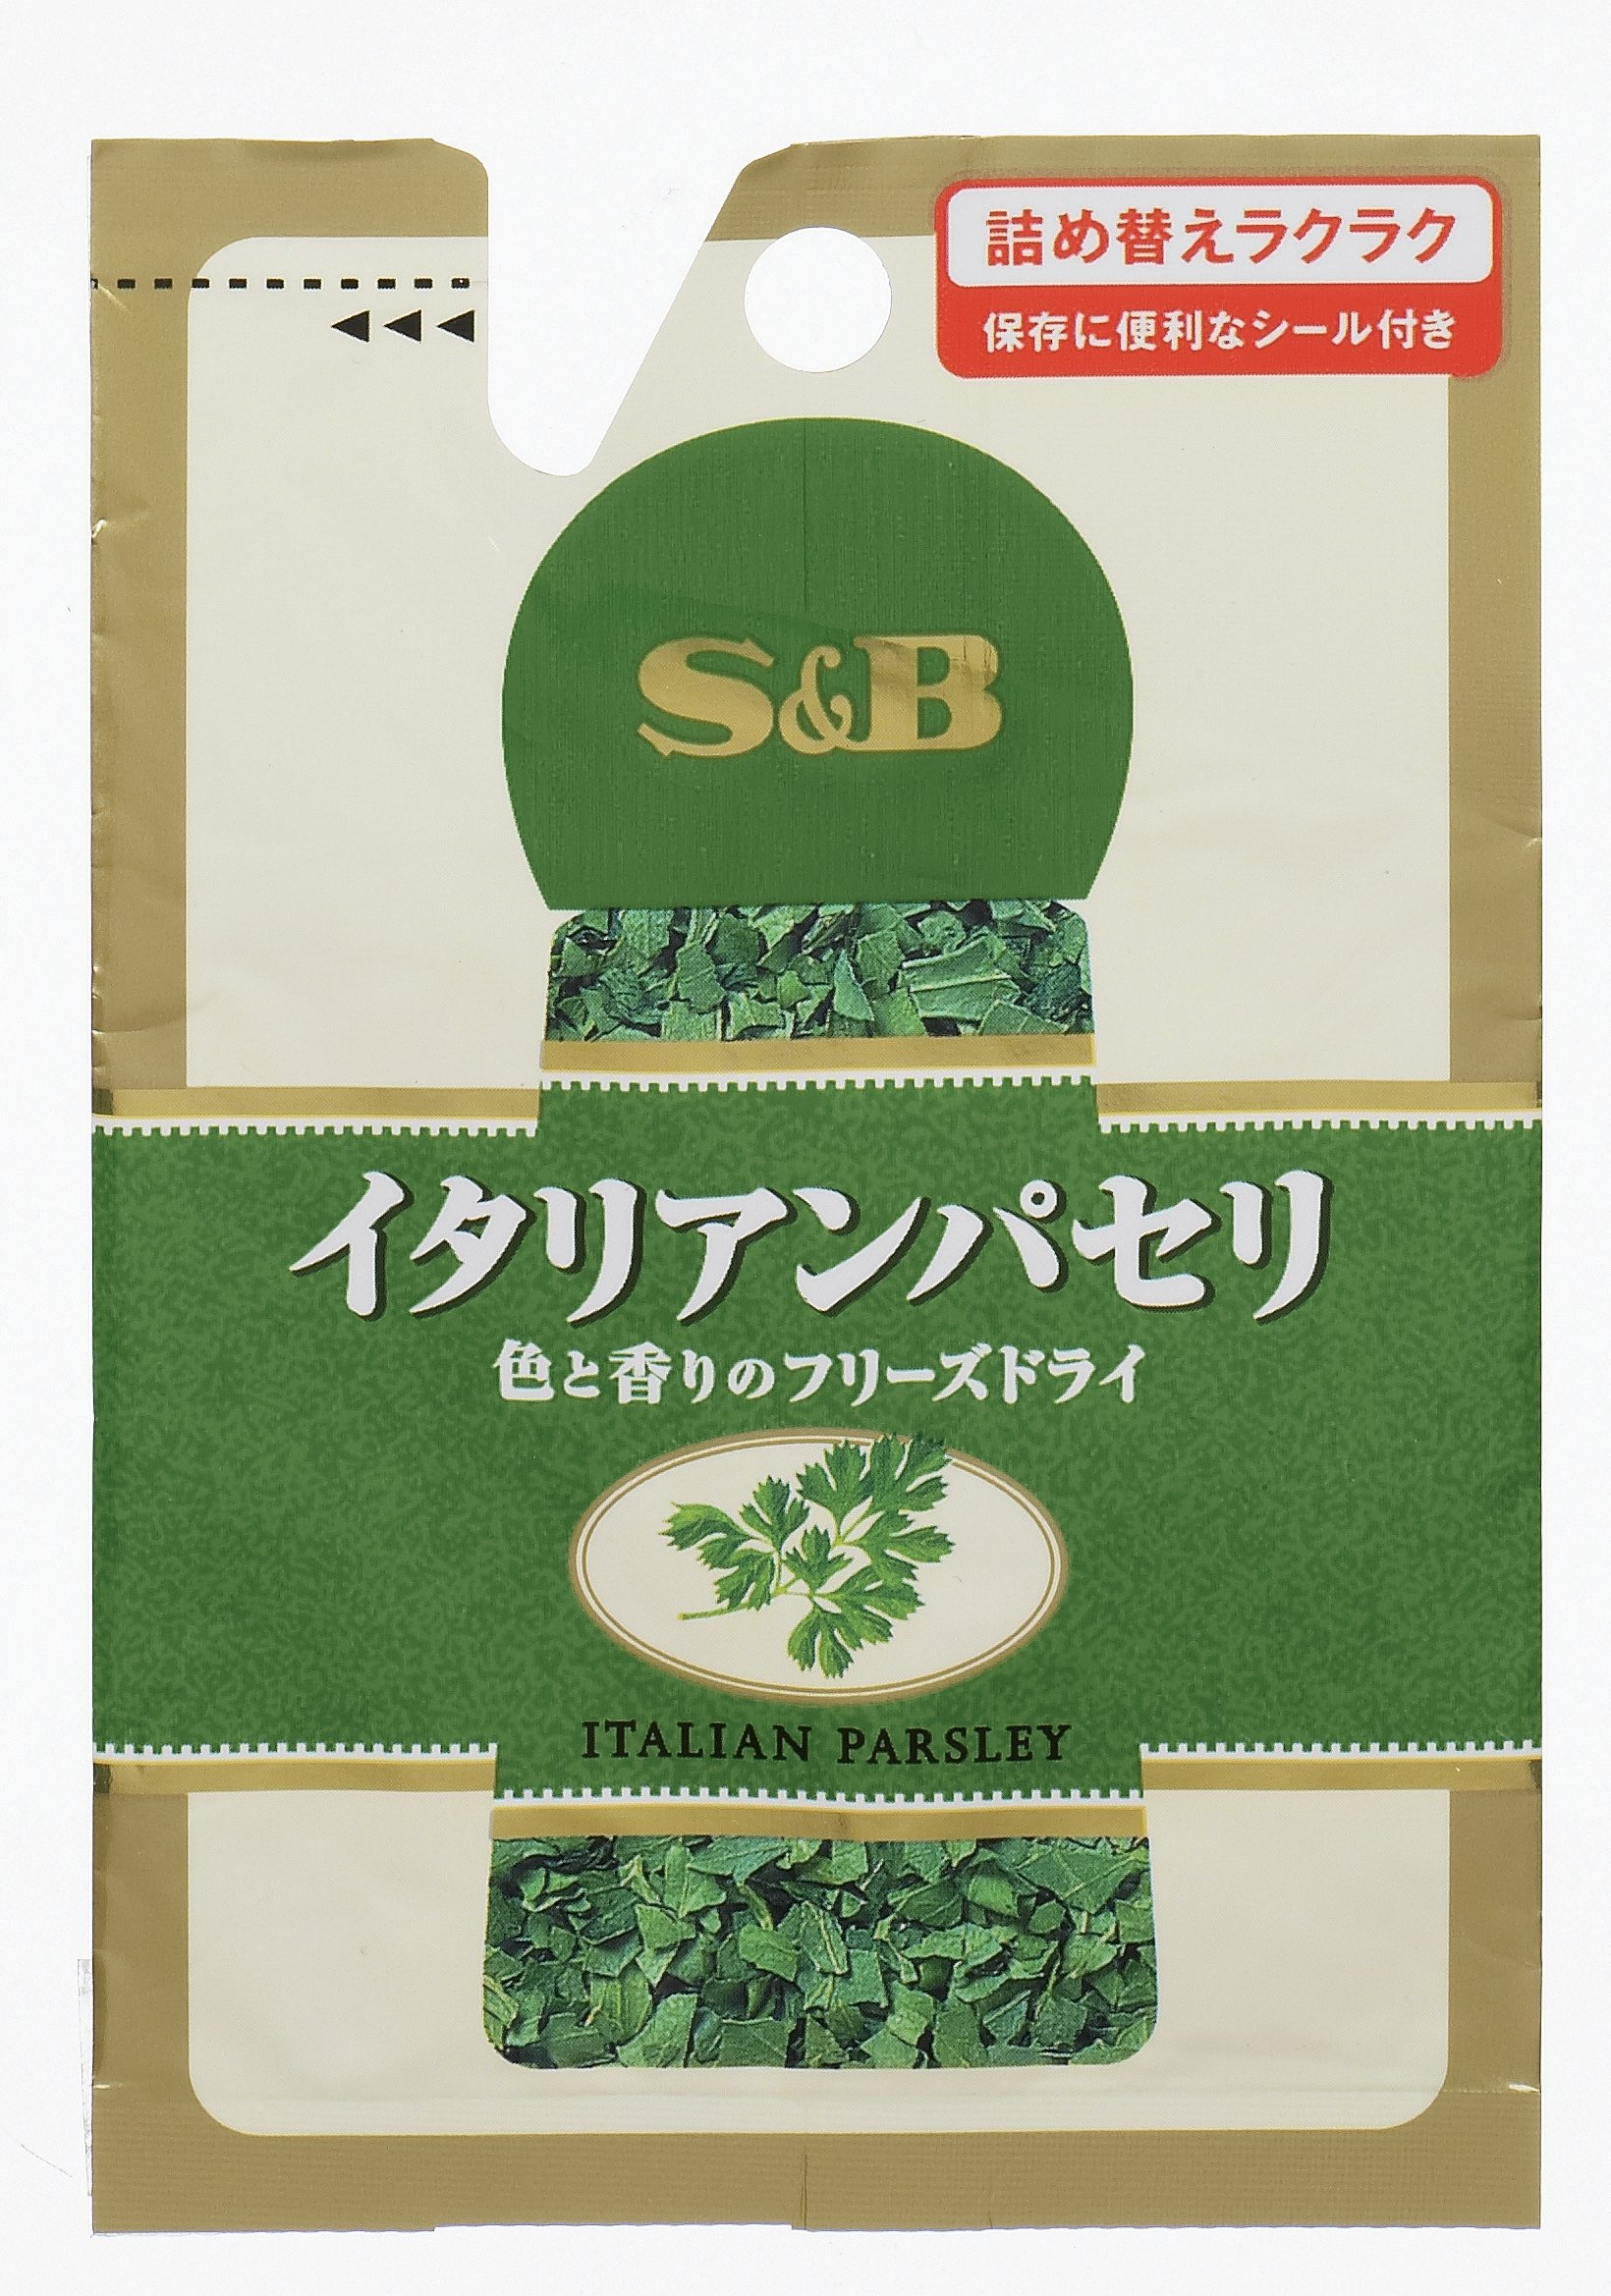 S & B bag containing Italian parsley (FD) 1.8gX10 pieces by S & B Series